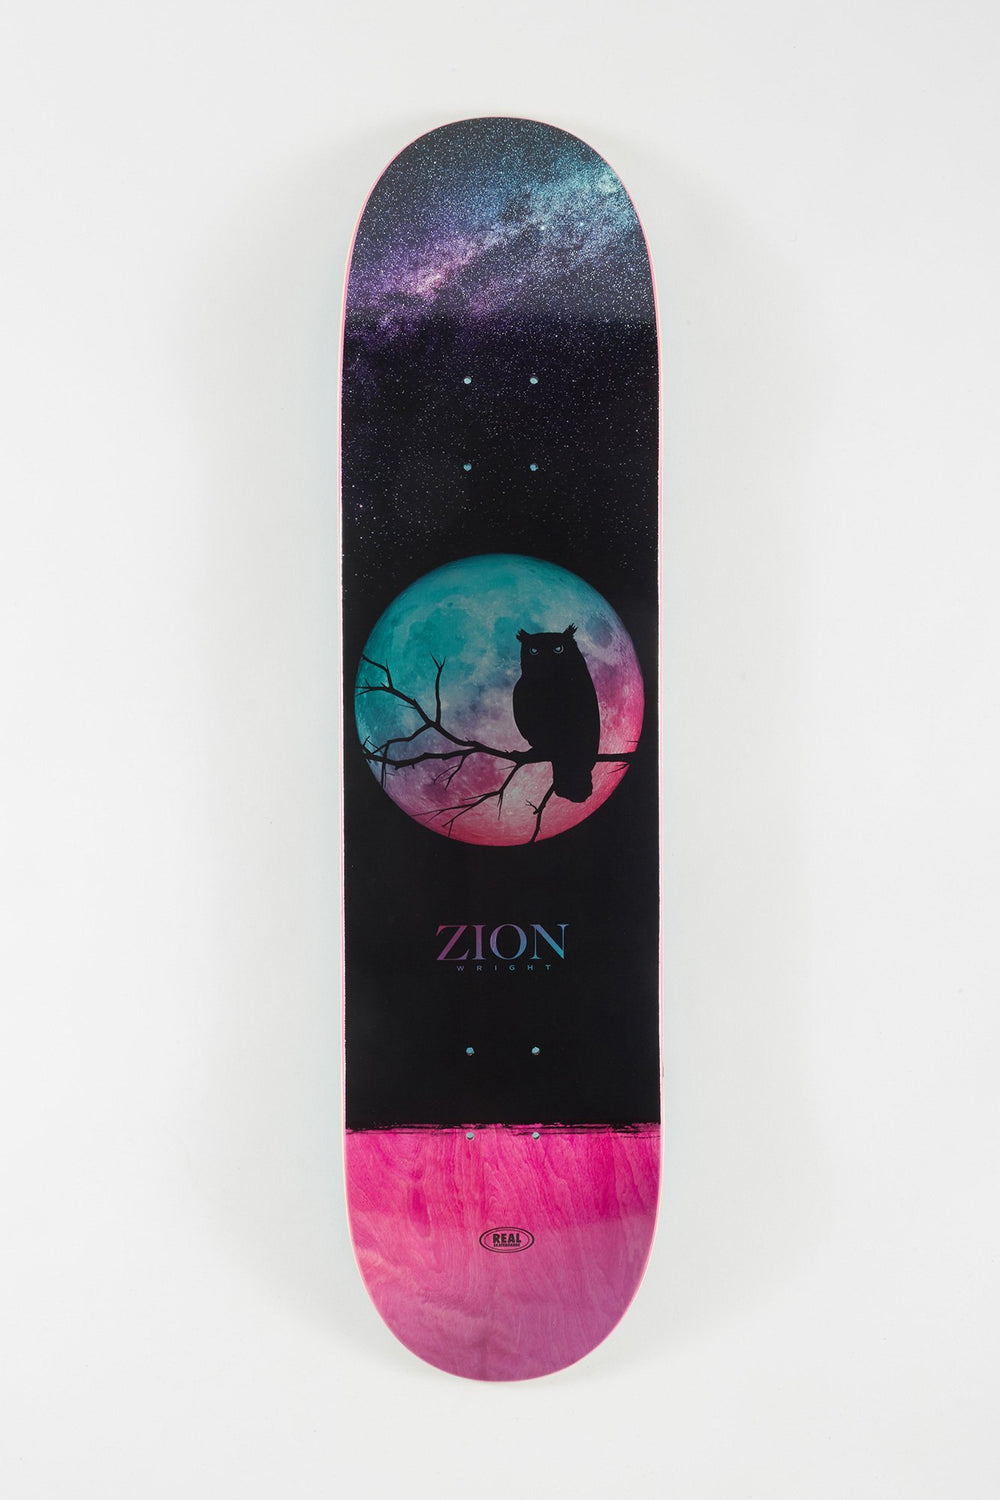 Real Zion Wright Lunar Pro Deck 8.06